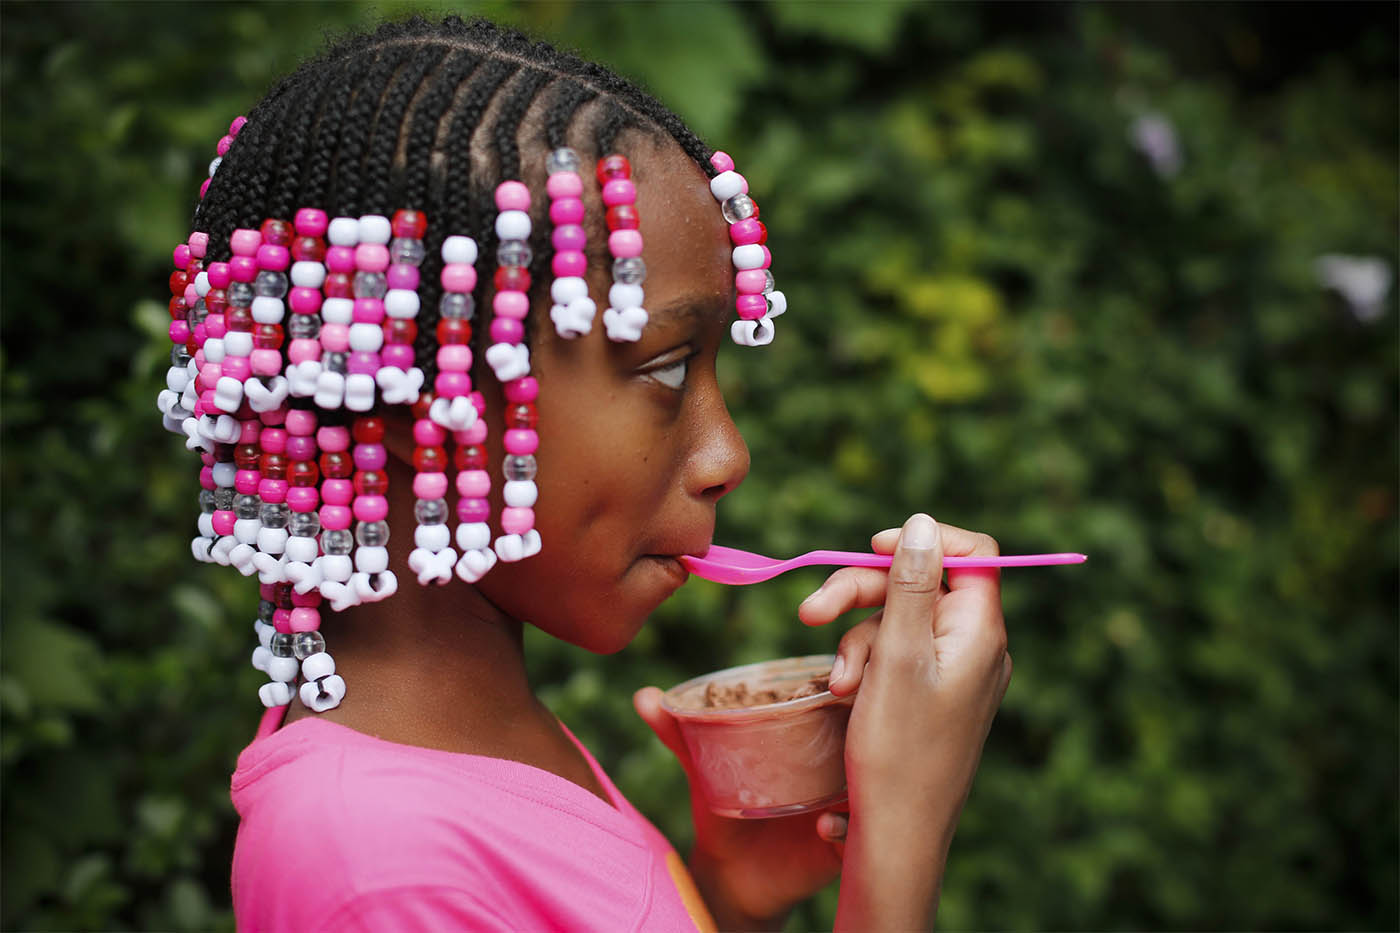 Genesis Dixon, 9, is a study in pink as she enjoys an ice cream from Fowlers Chocolate in the Elmwood Village on Saturday, Sept. 24, 2016. (Derek Gee/Buffalo News)